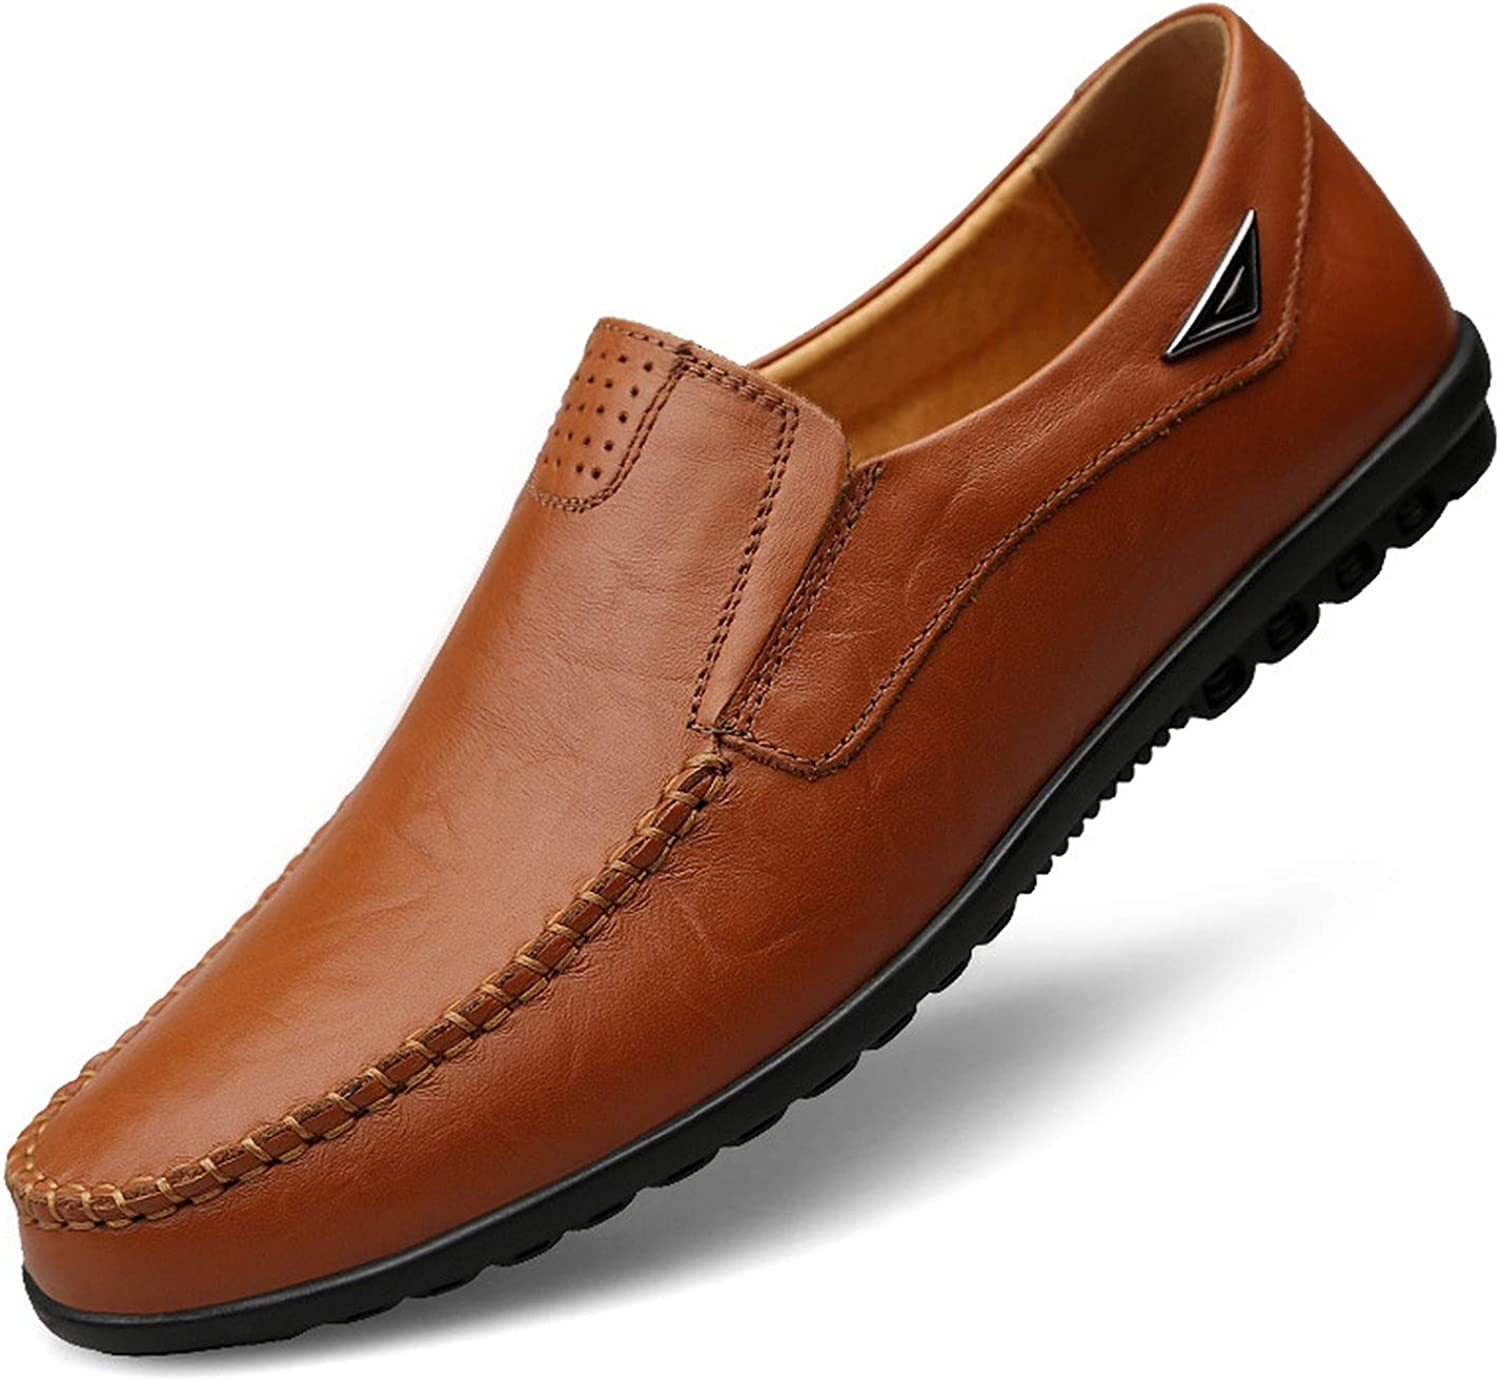 TongLing Mens Genuine Leather Shoes Lace Up Breathable Business Low Top Lined Oxfords Driving Shoes